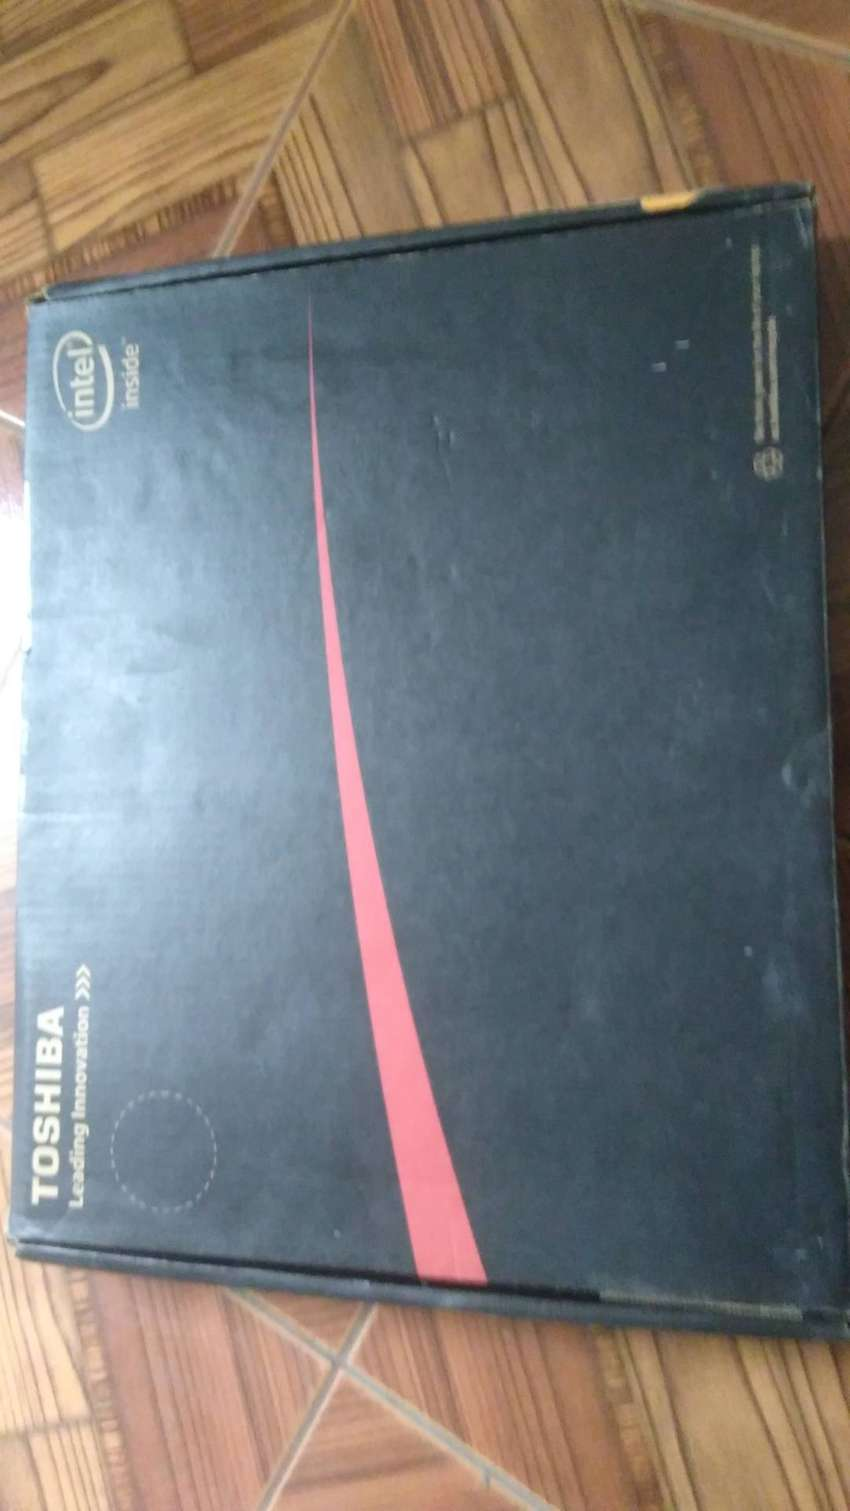 Vendo laptop Toshiba satellite Intel inside 0